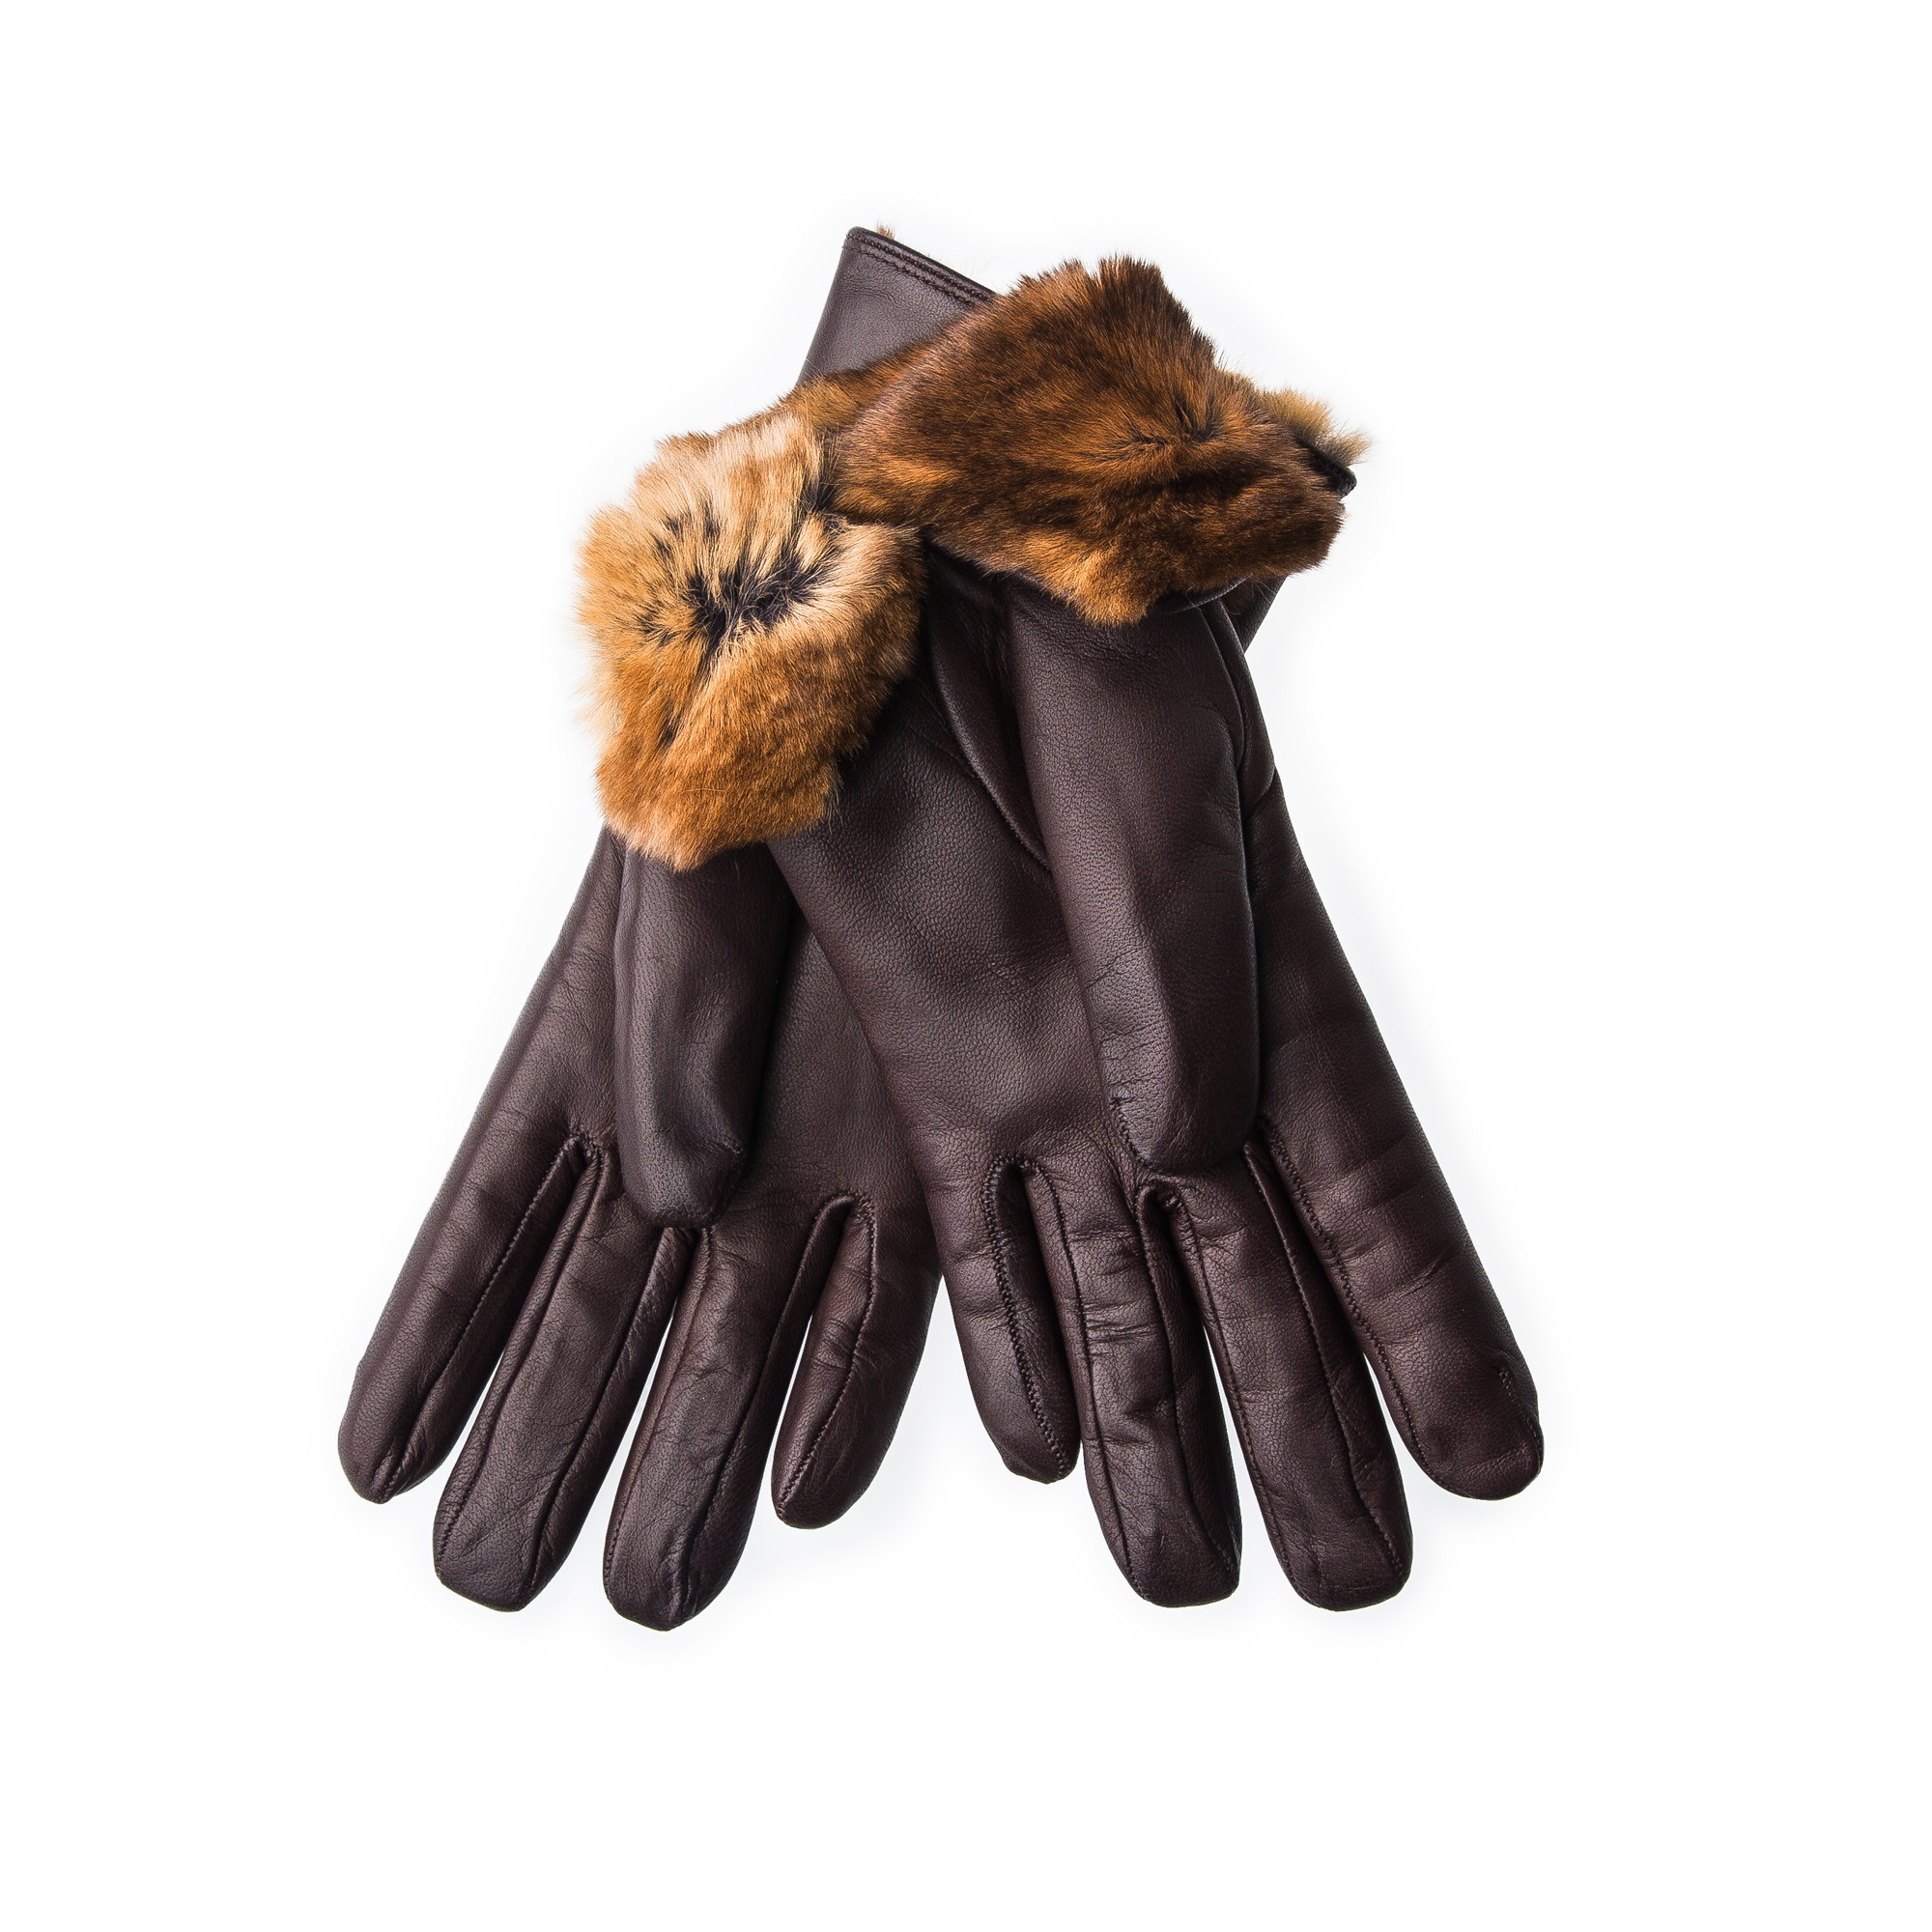 Ladies leather gloves large - Merola Ladies Leather Gloves With Rex Rabbit Fur Brown